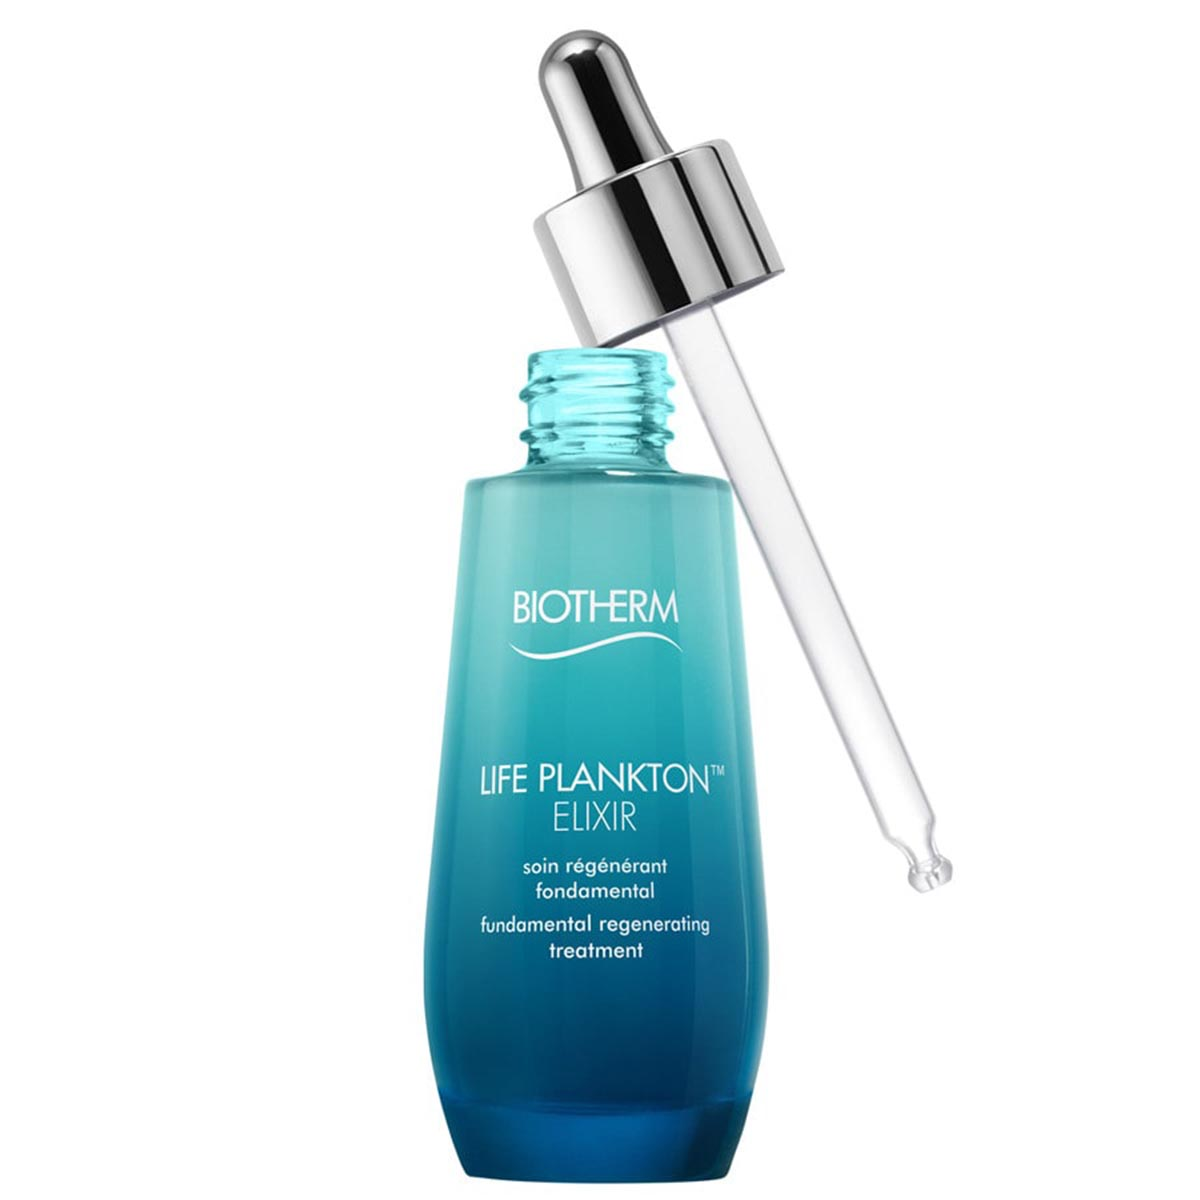 Biotherm life plankton elixir treatment 30ml